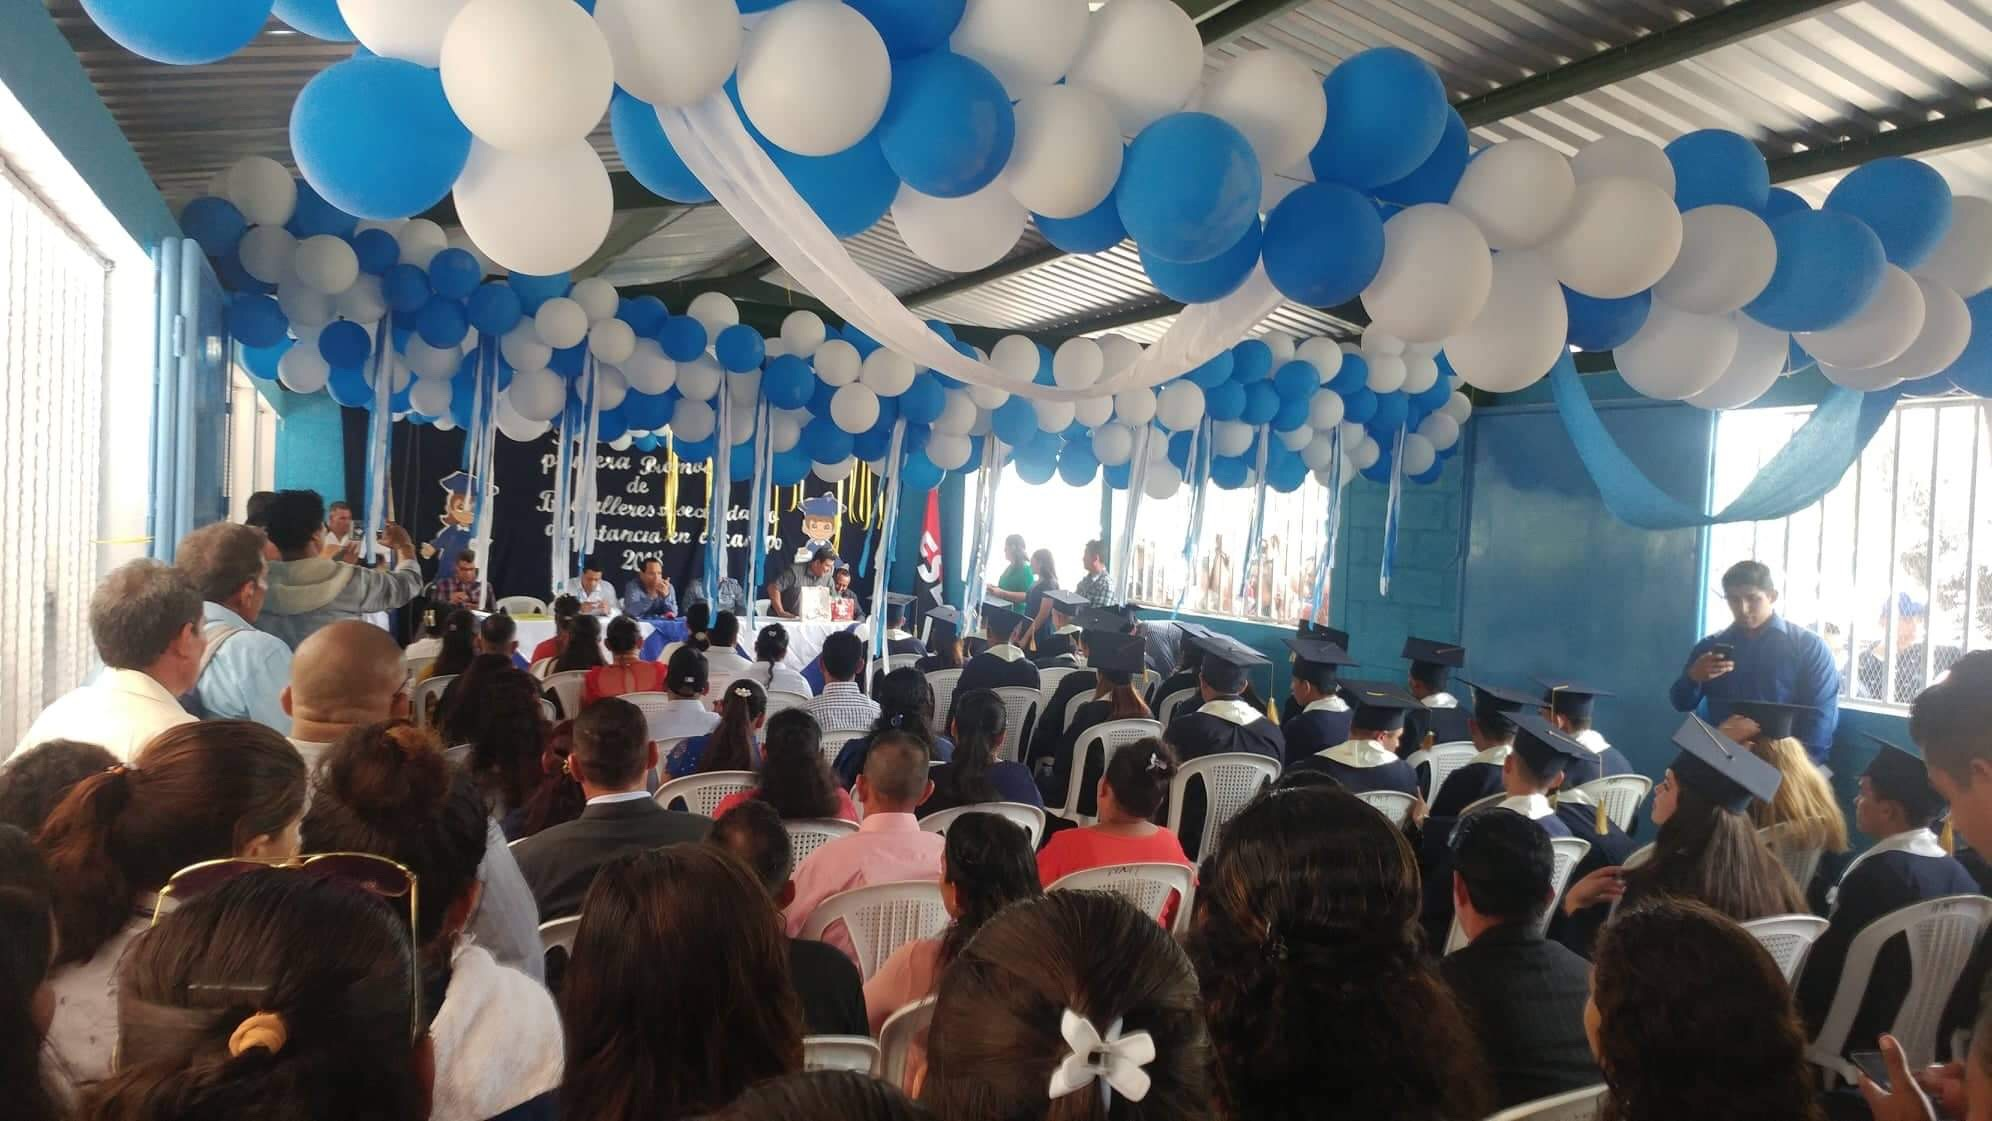 Community members celebrate the 2018 graduating class in the new school at Mesa de Acicaya, Tipitapa Region, Nicaragua